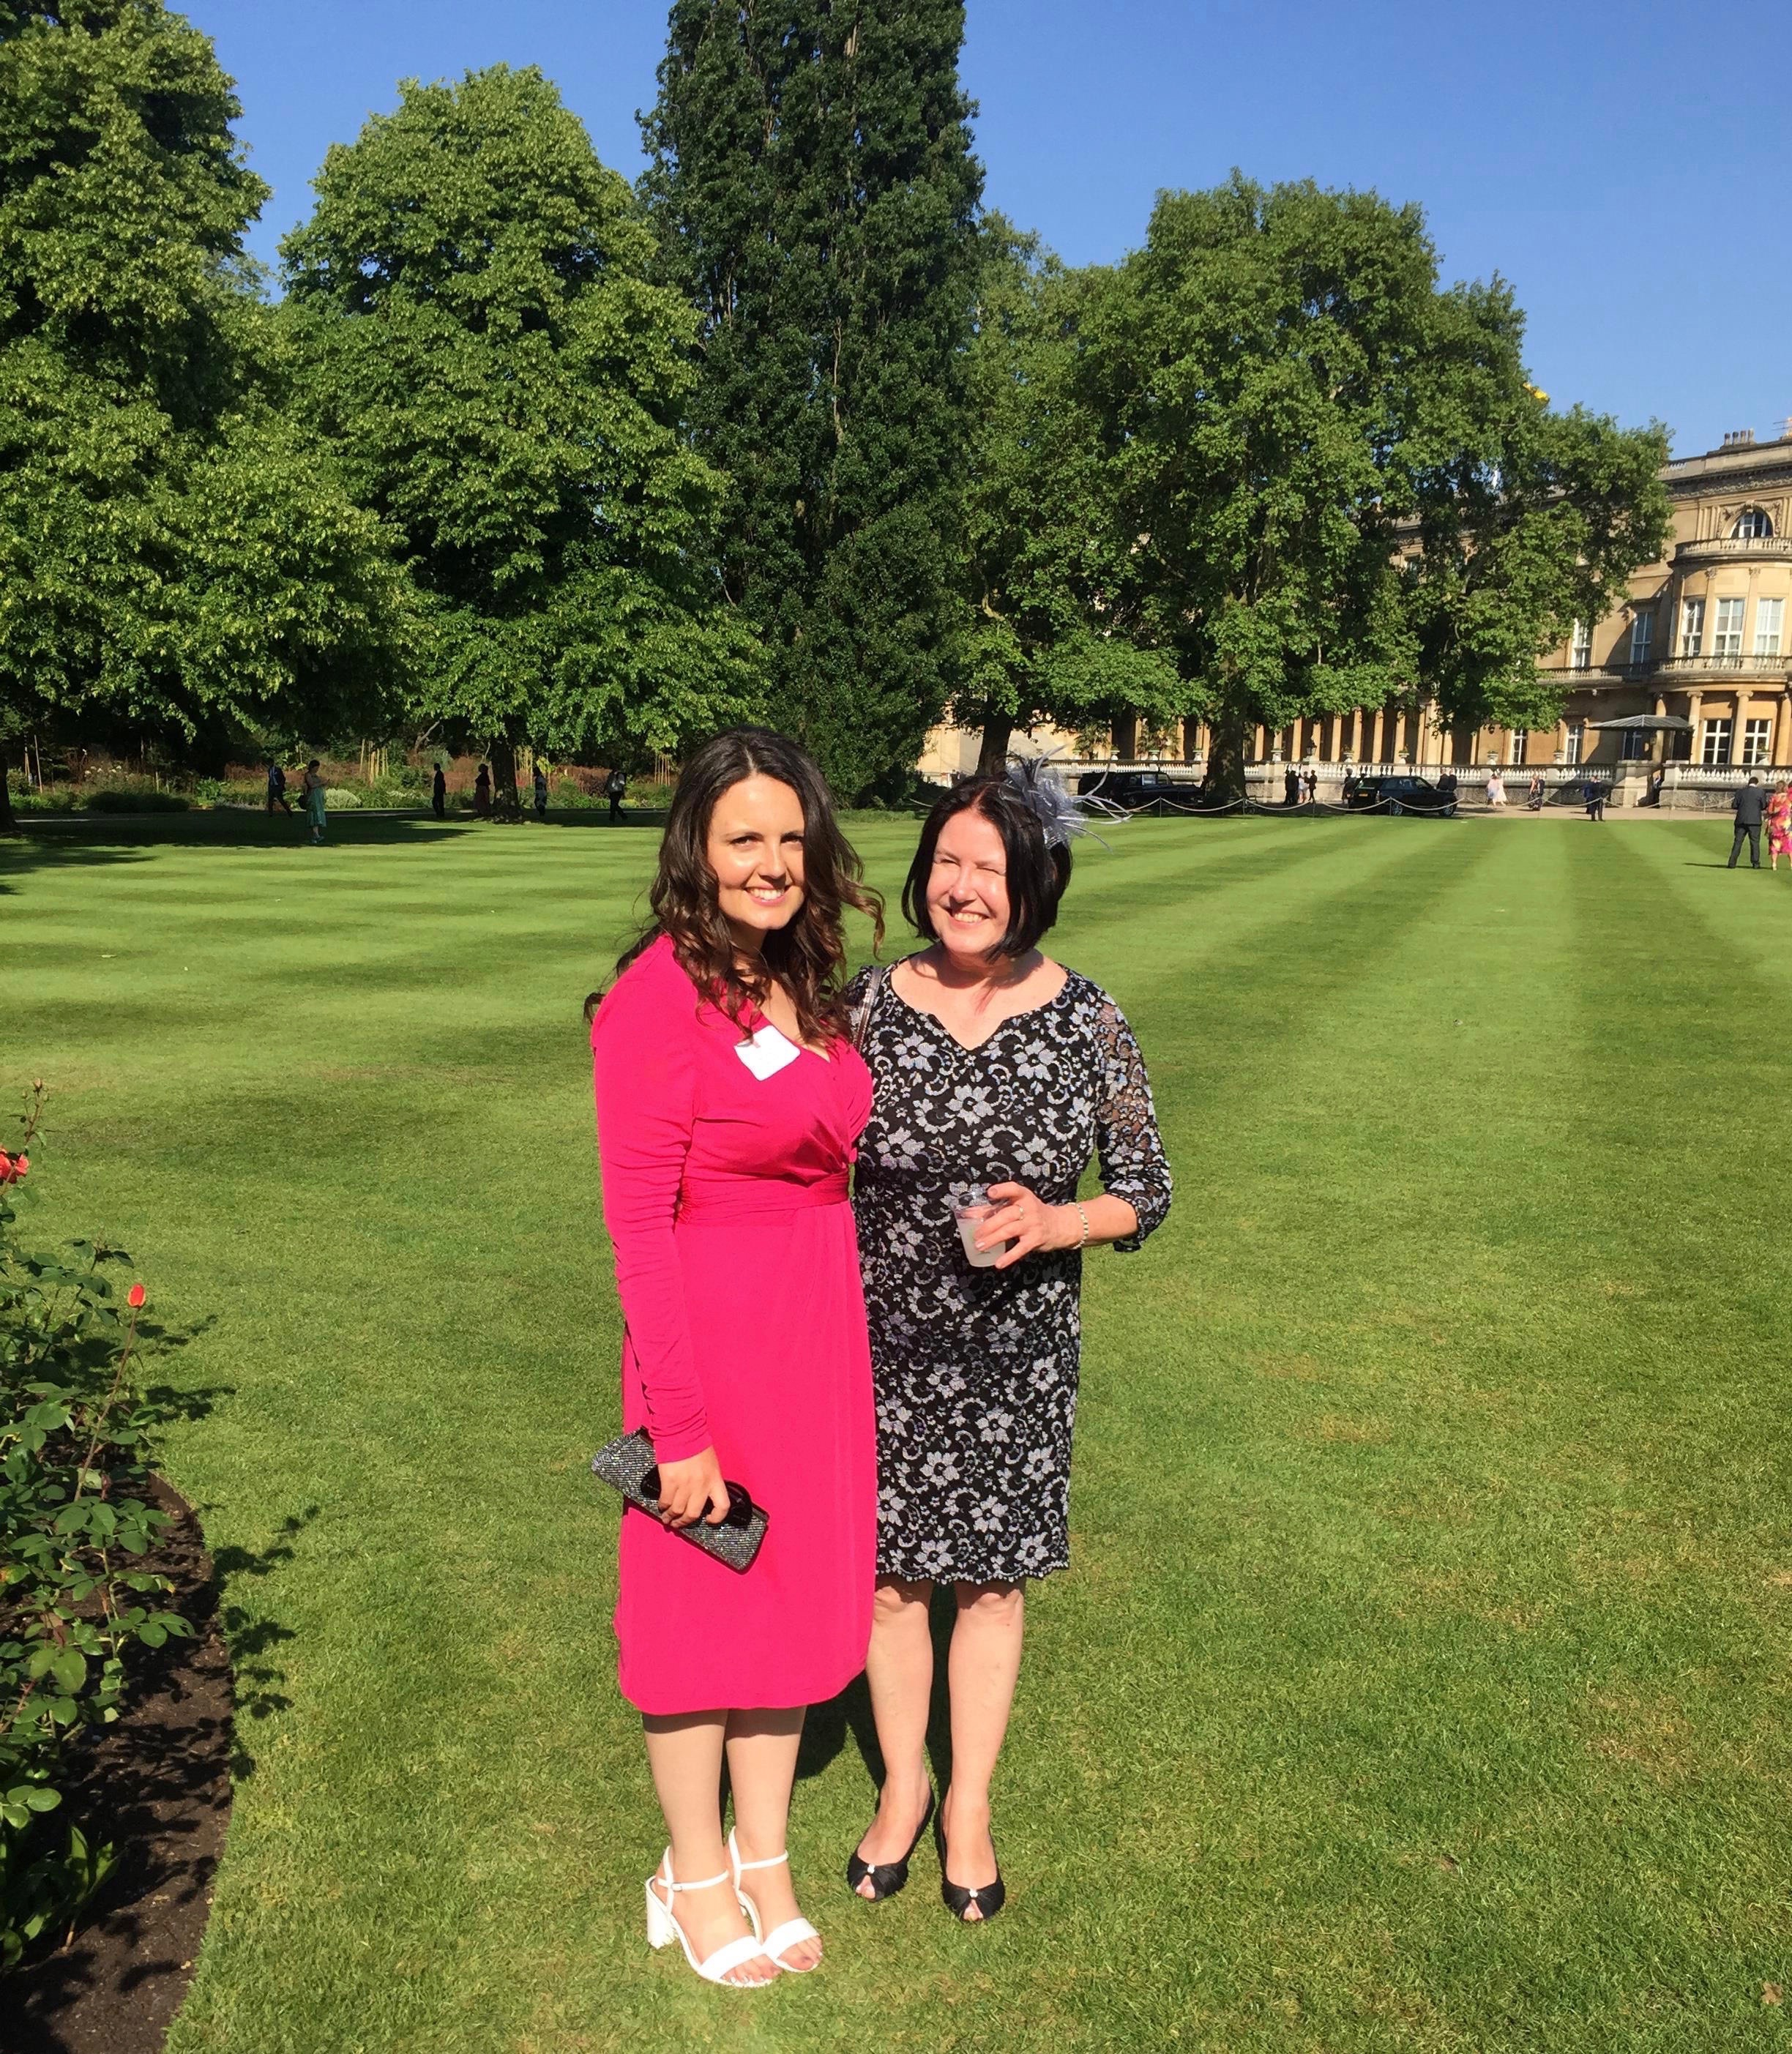 Lisa and Mum Angie in the gardens of Buckingham Palace